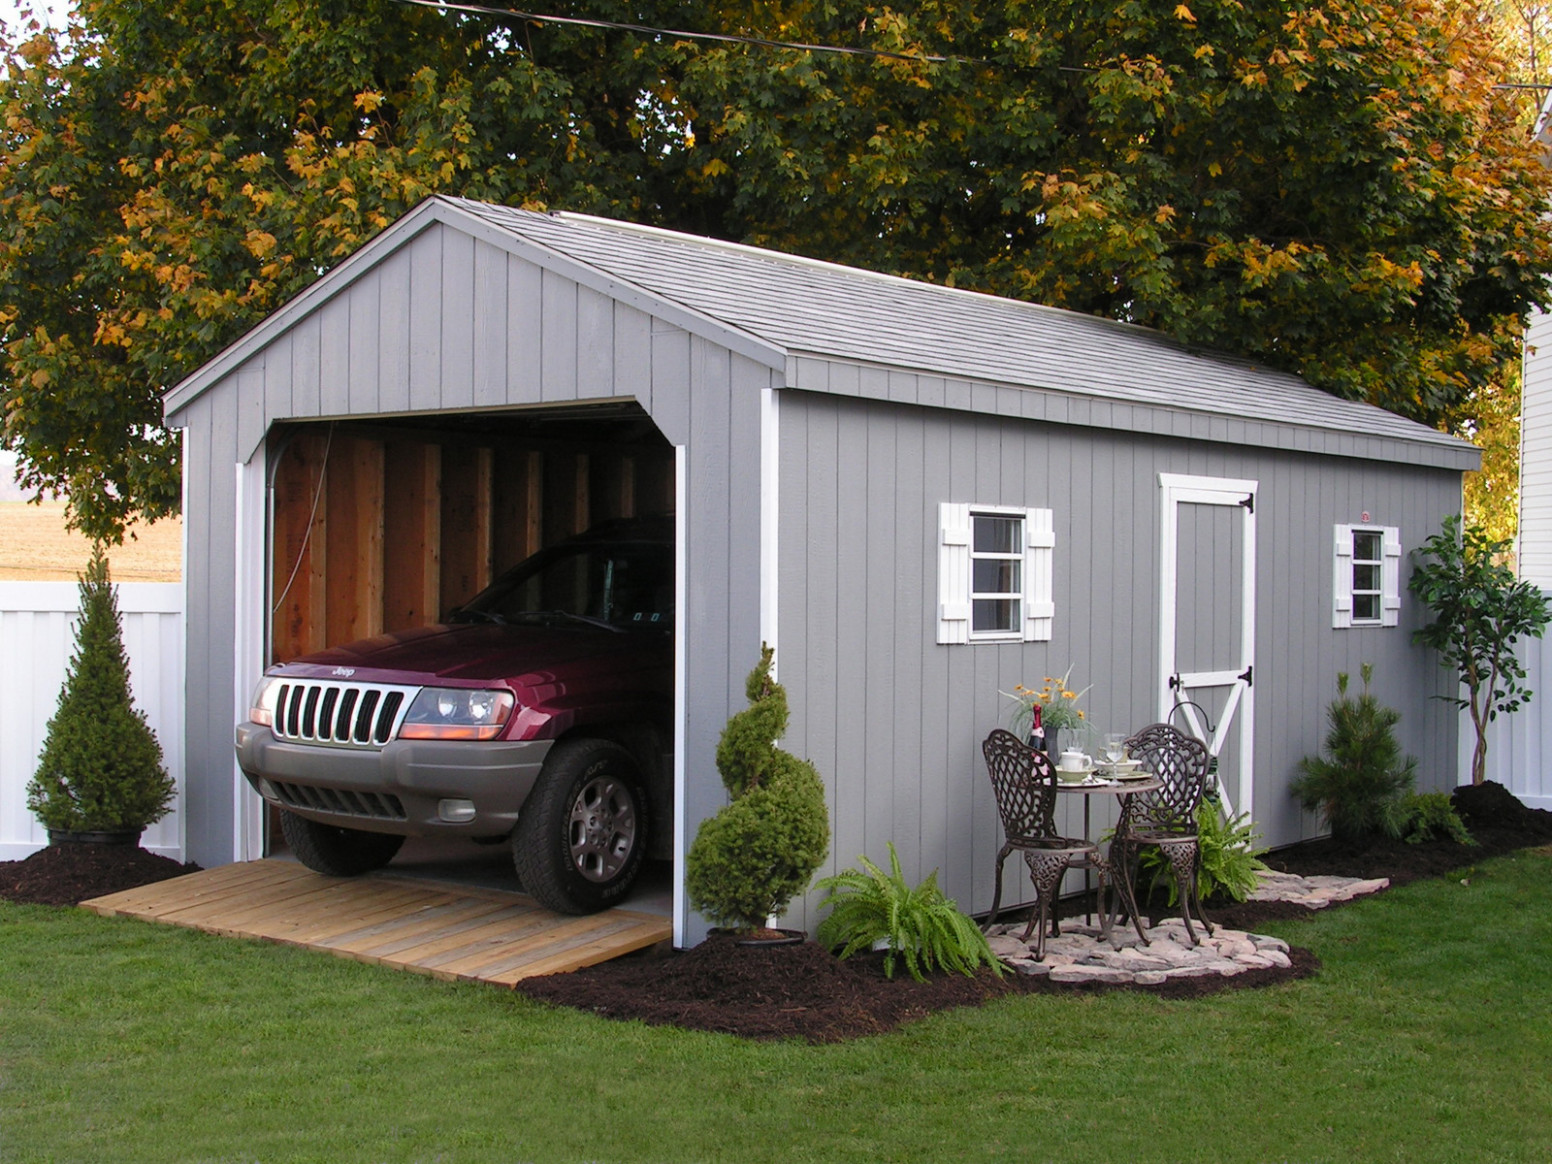 Prefabricated Garages In PA   One Car Garages NJ, NY, CT ..